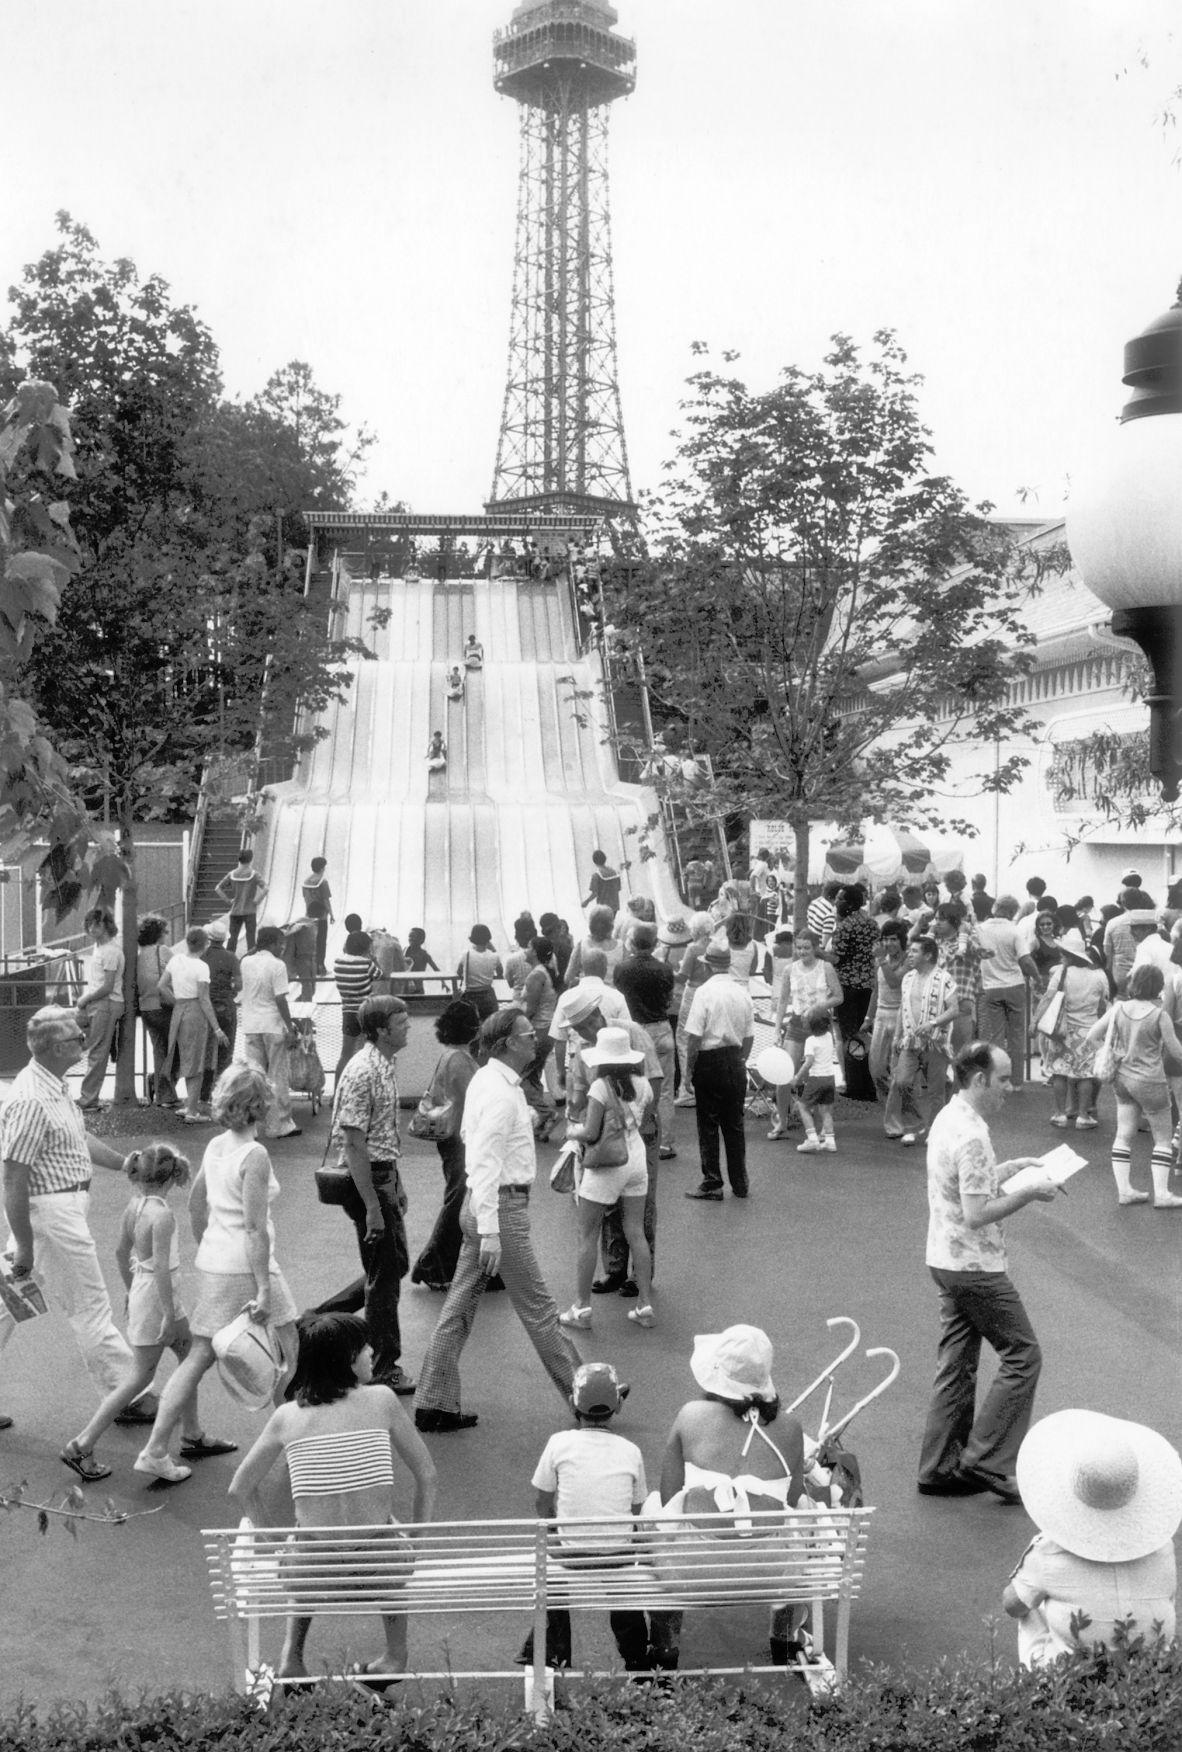 This is a photograph from opening day in 1975 of the Eiffel Tower.